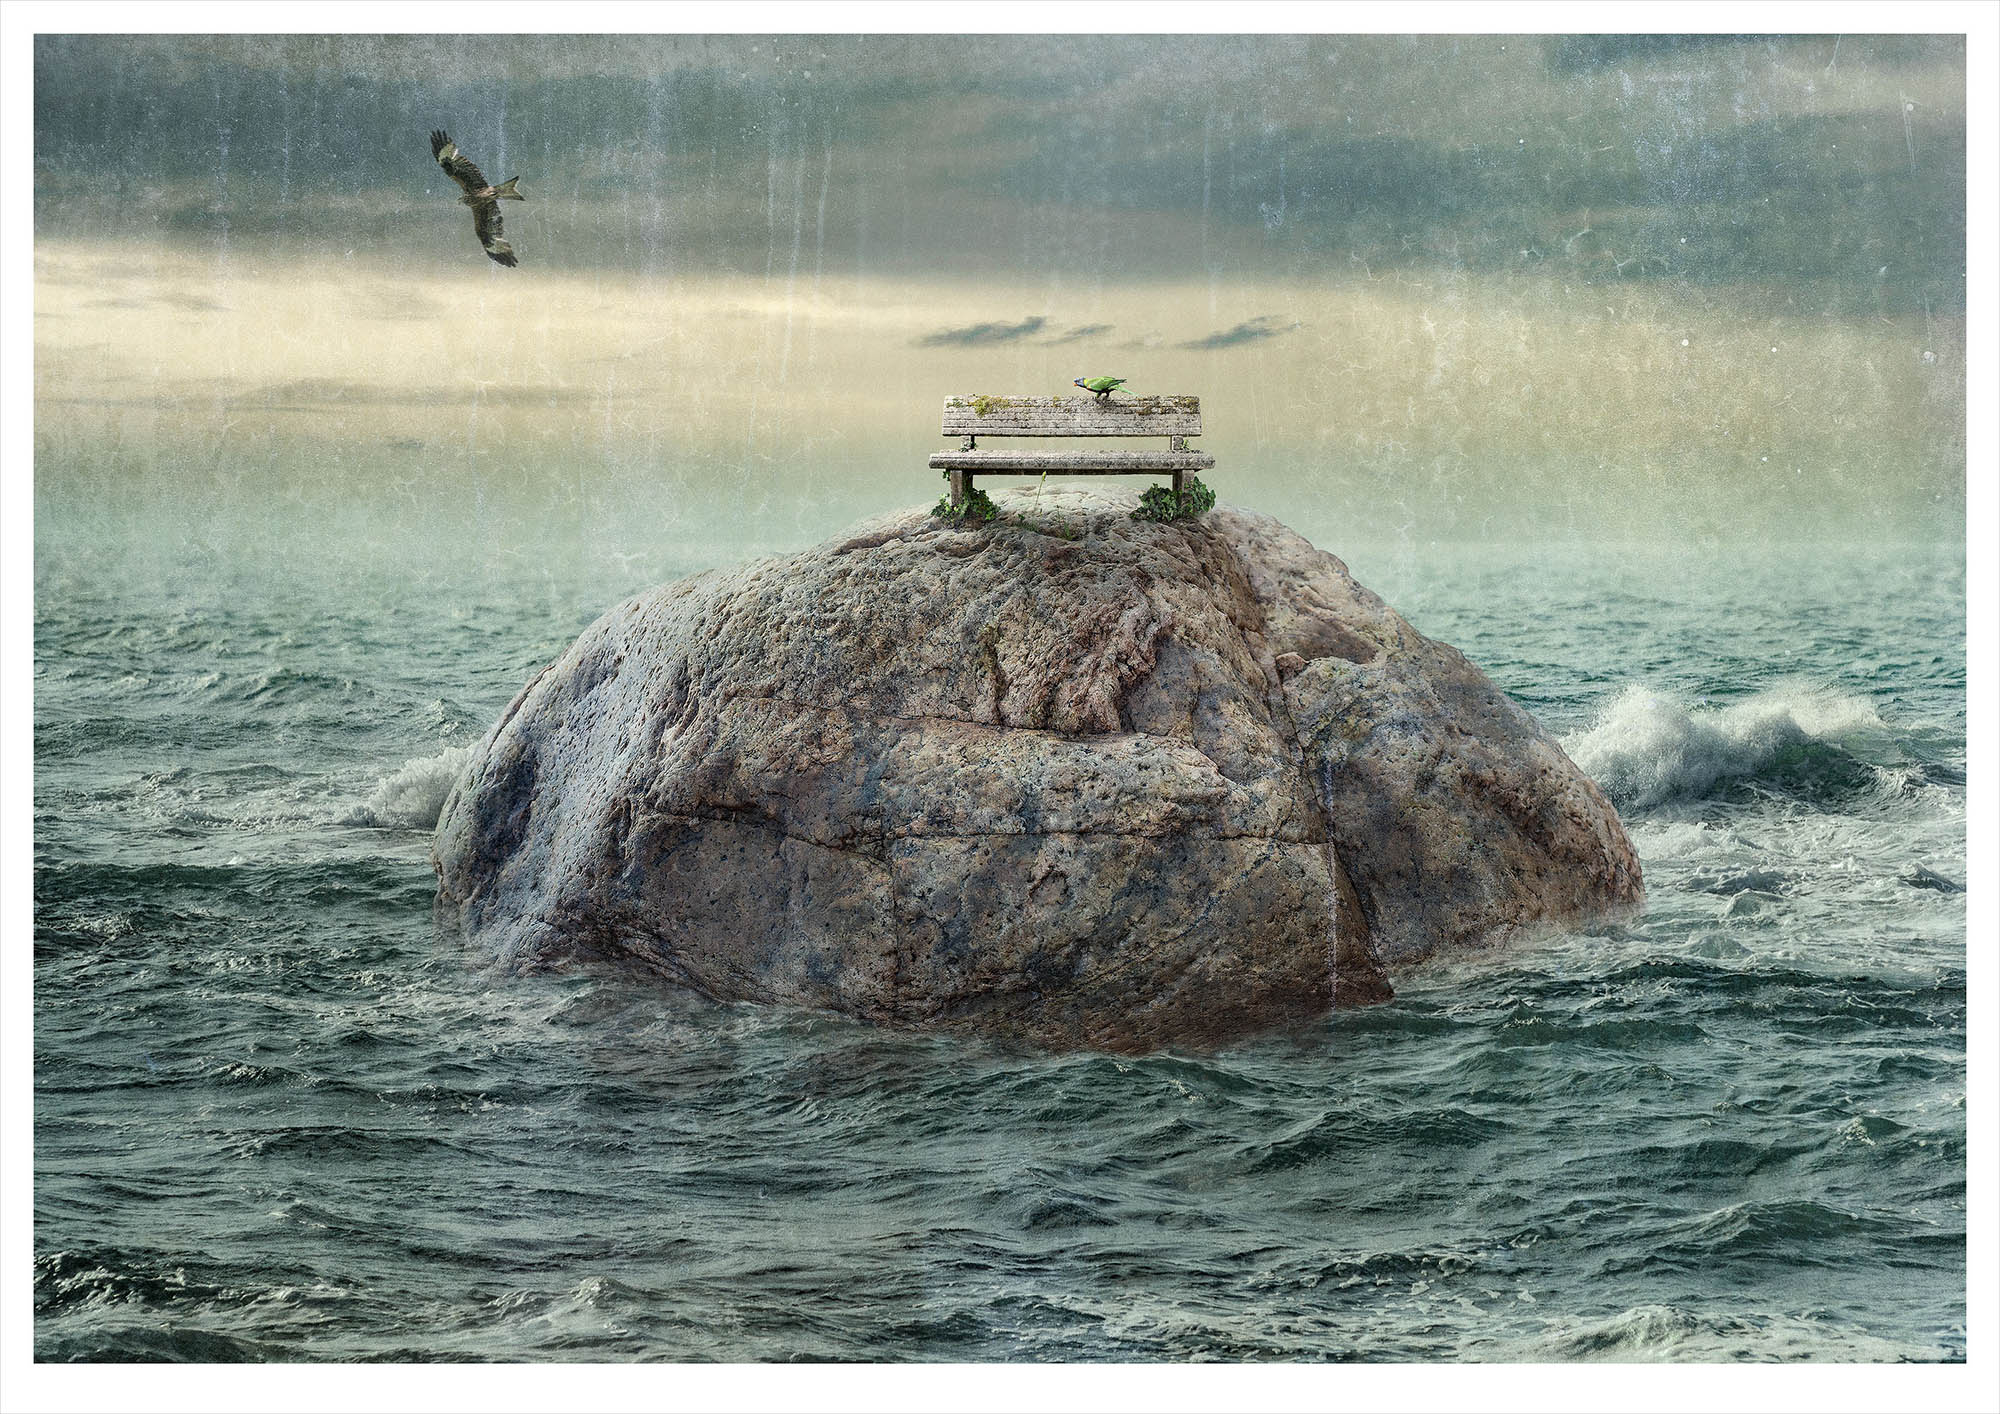 Solitary small fantasy island in ocean with stone bench on which a parrot sits warding off a predatory hawk